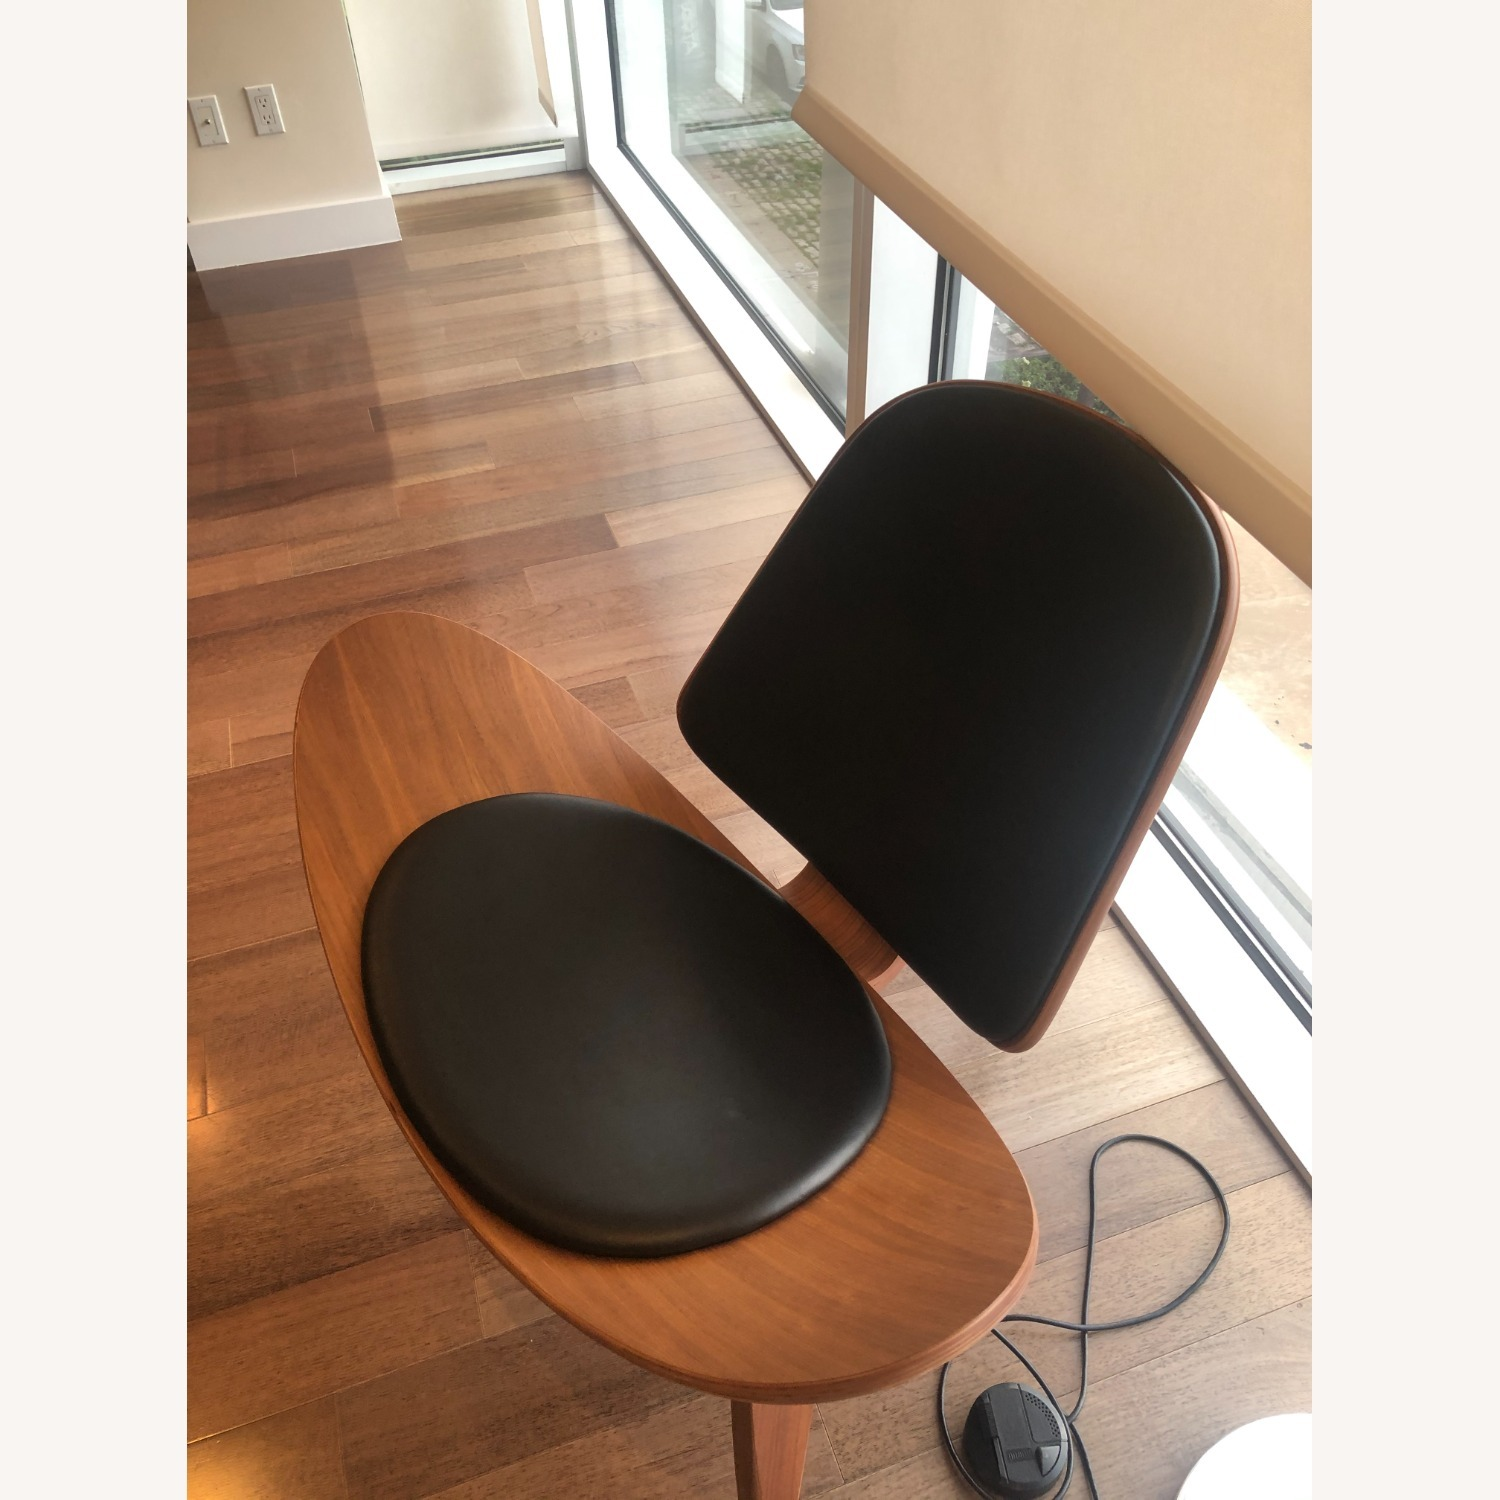 Sit Down New York Mitre Walnut and Black Leather Chair - image-3